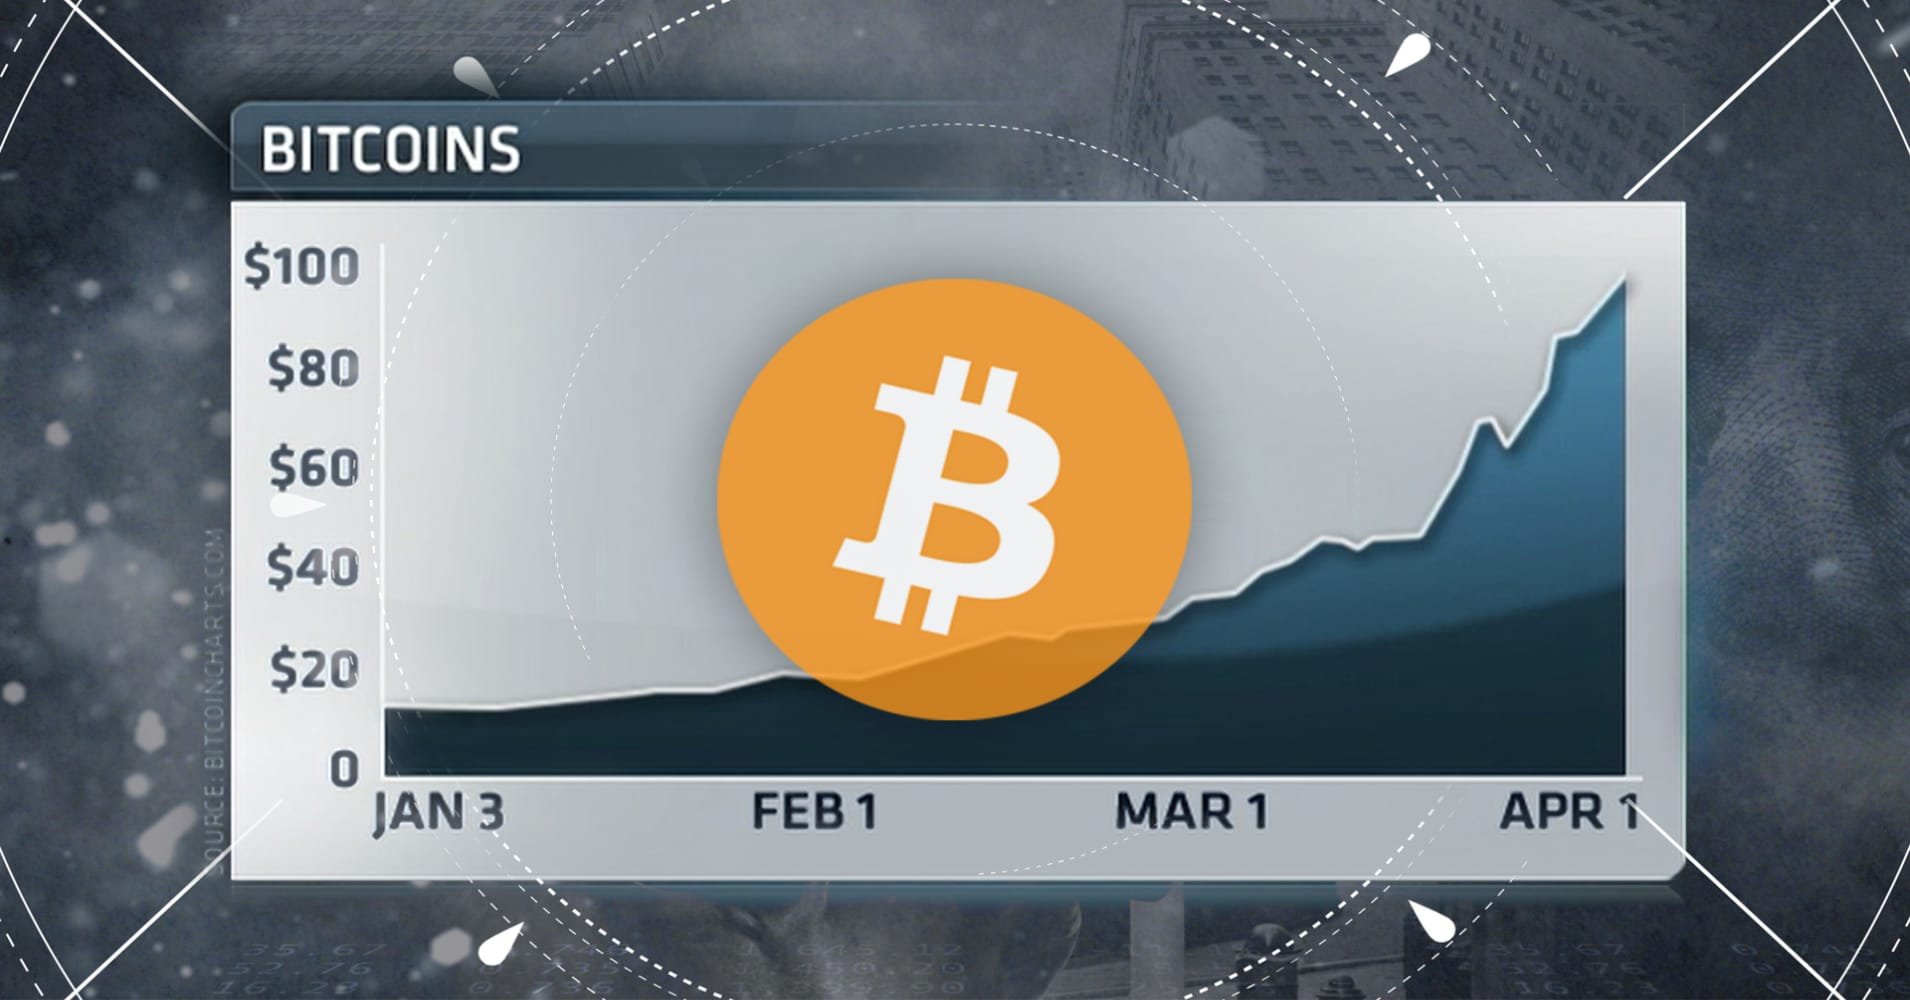 When Bitcoin hit $100: Watch CNBC's 2013 coverage